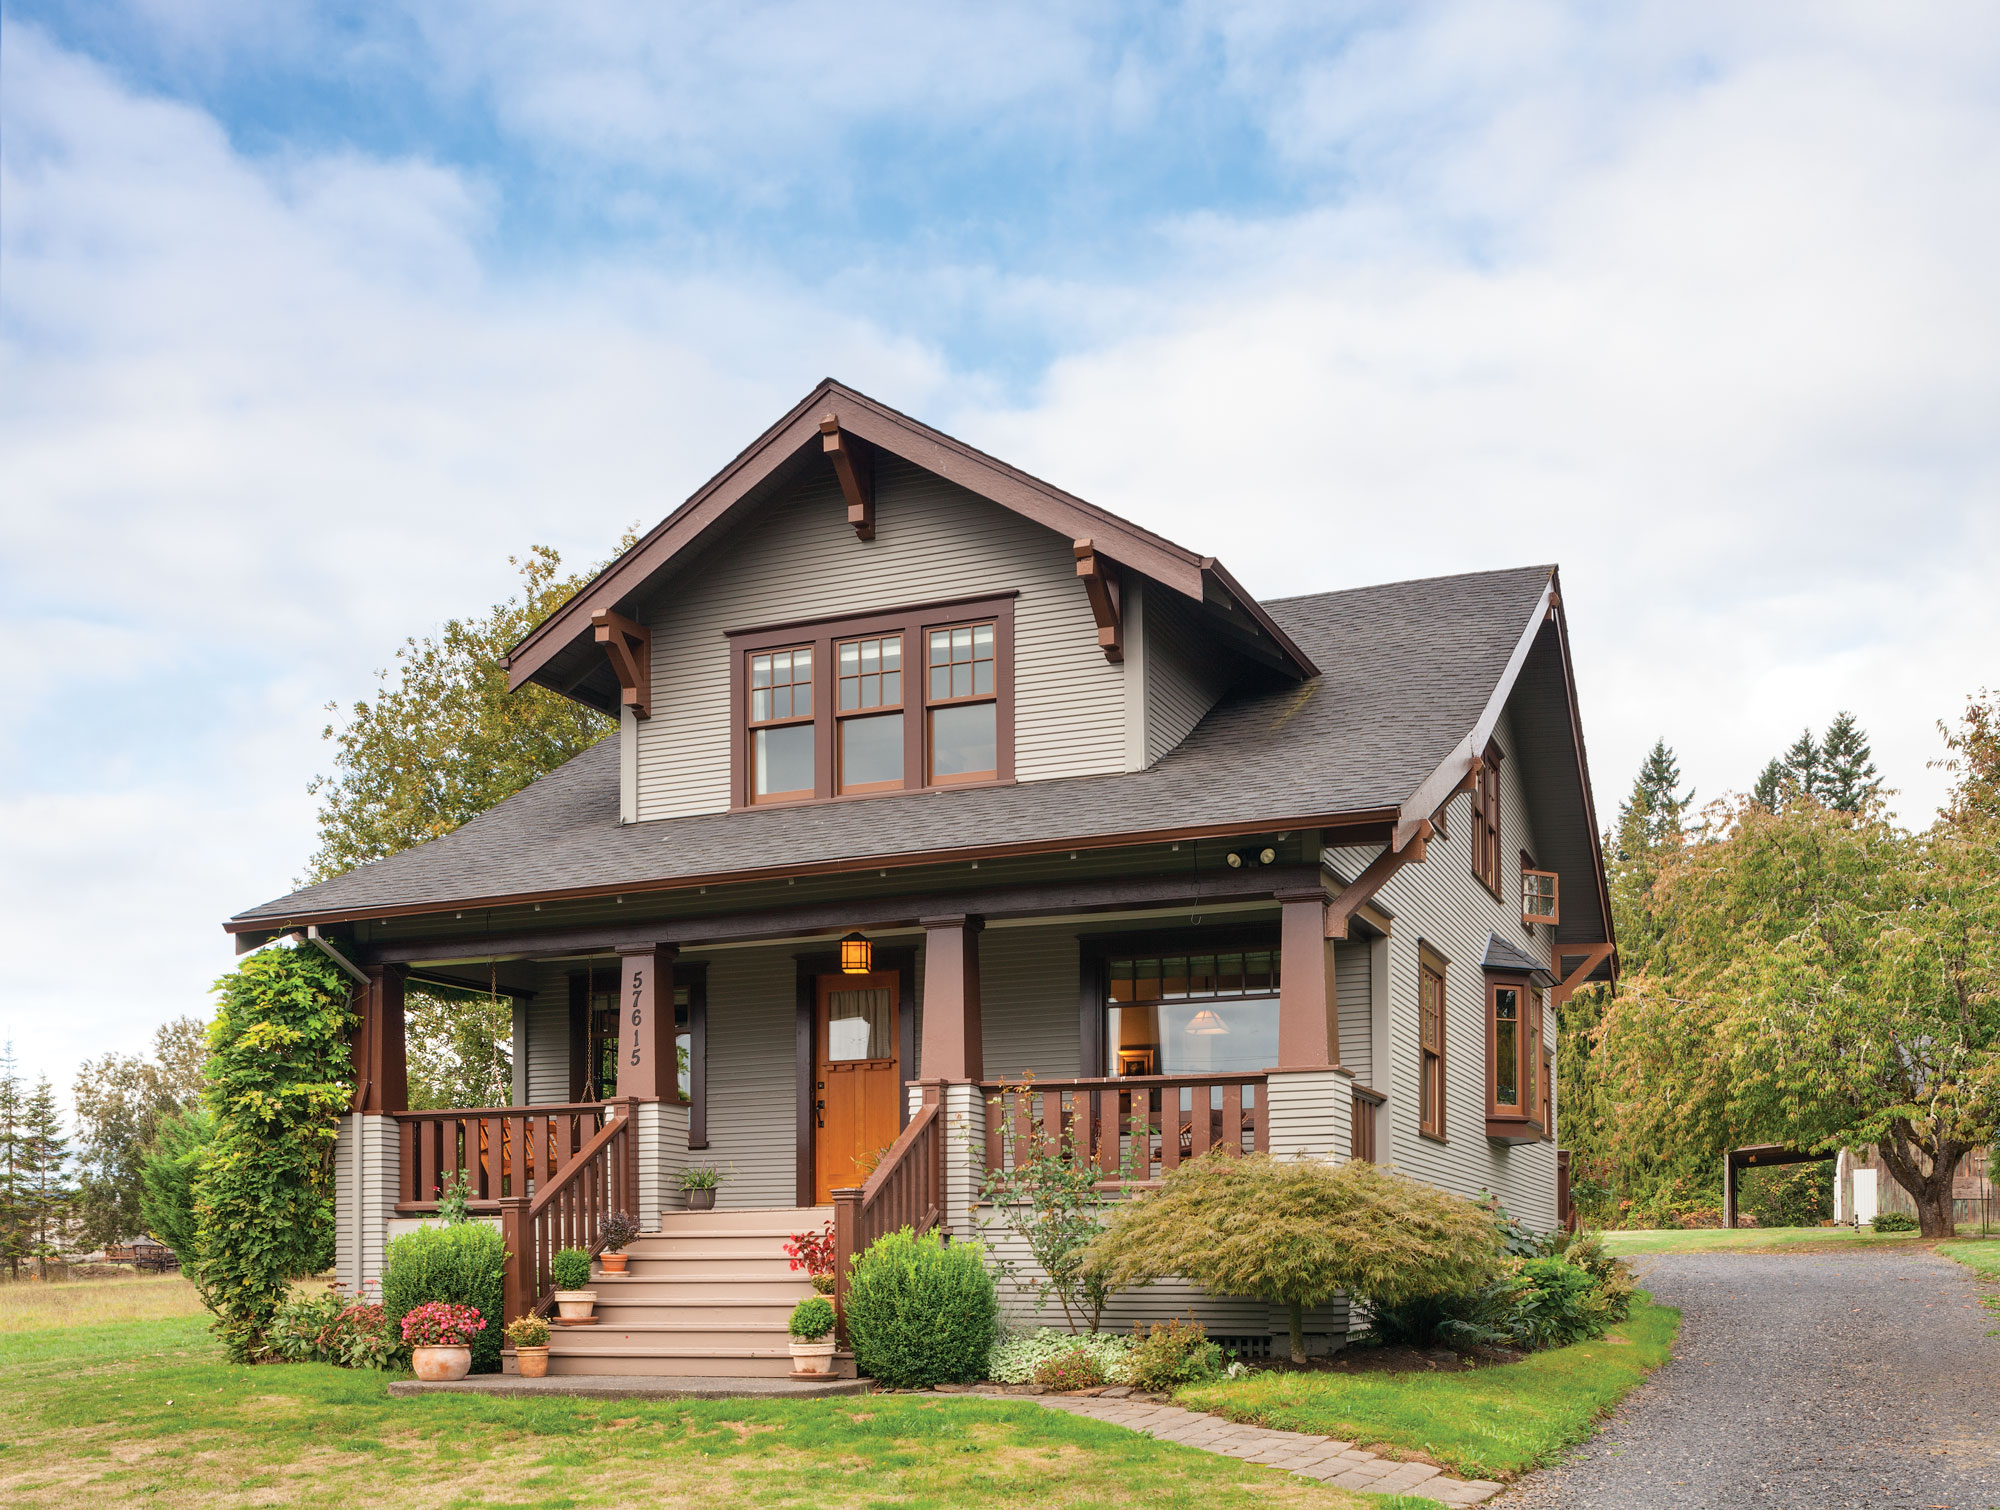 Semi-bungalow with Craftsman details